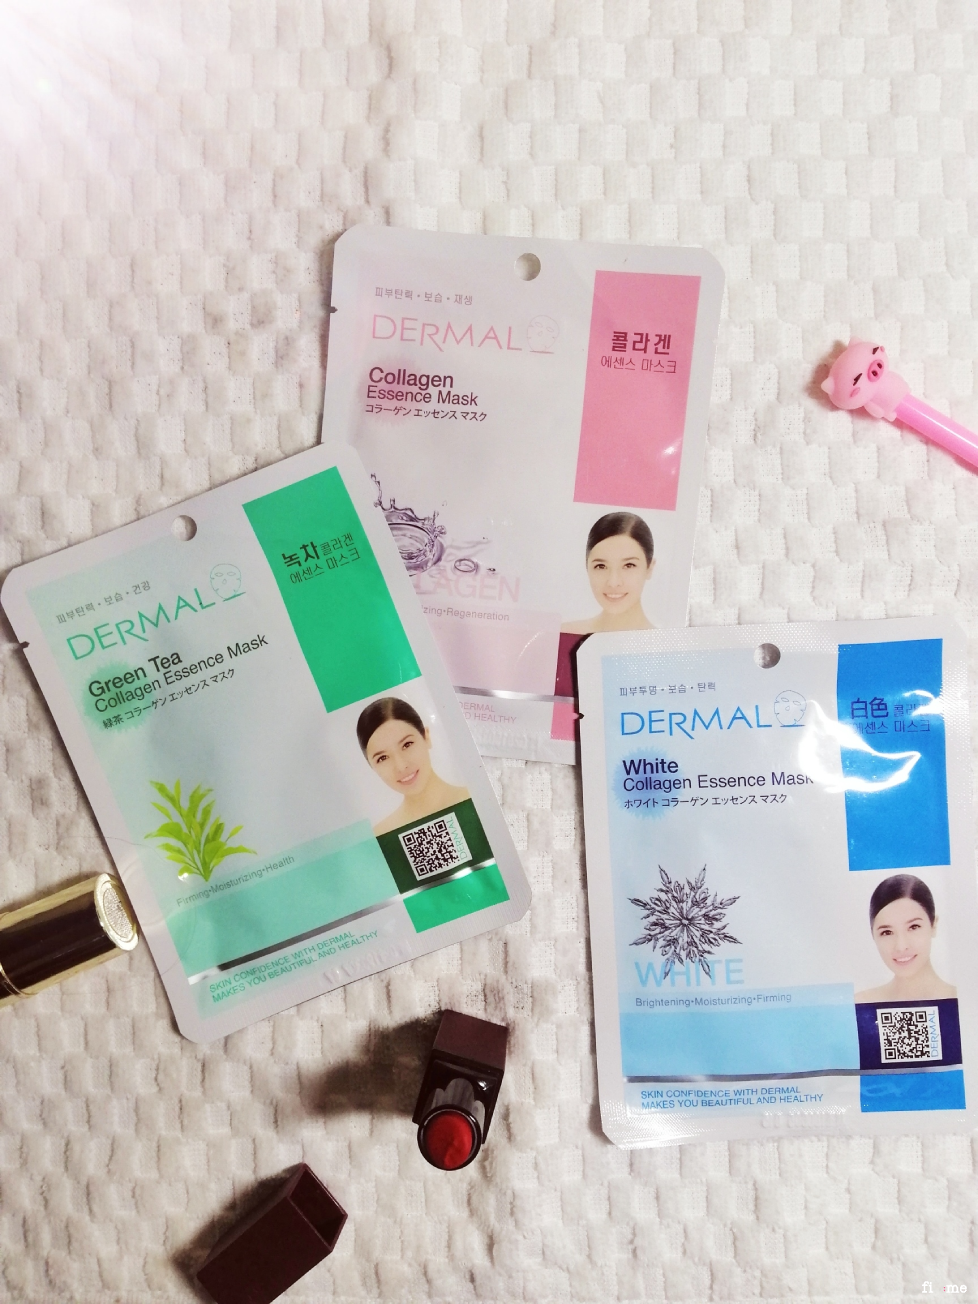 mat-na-mat-na-dermal-collagen-essence-mask-han-quoc-2143